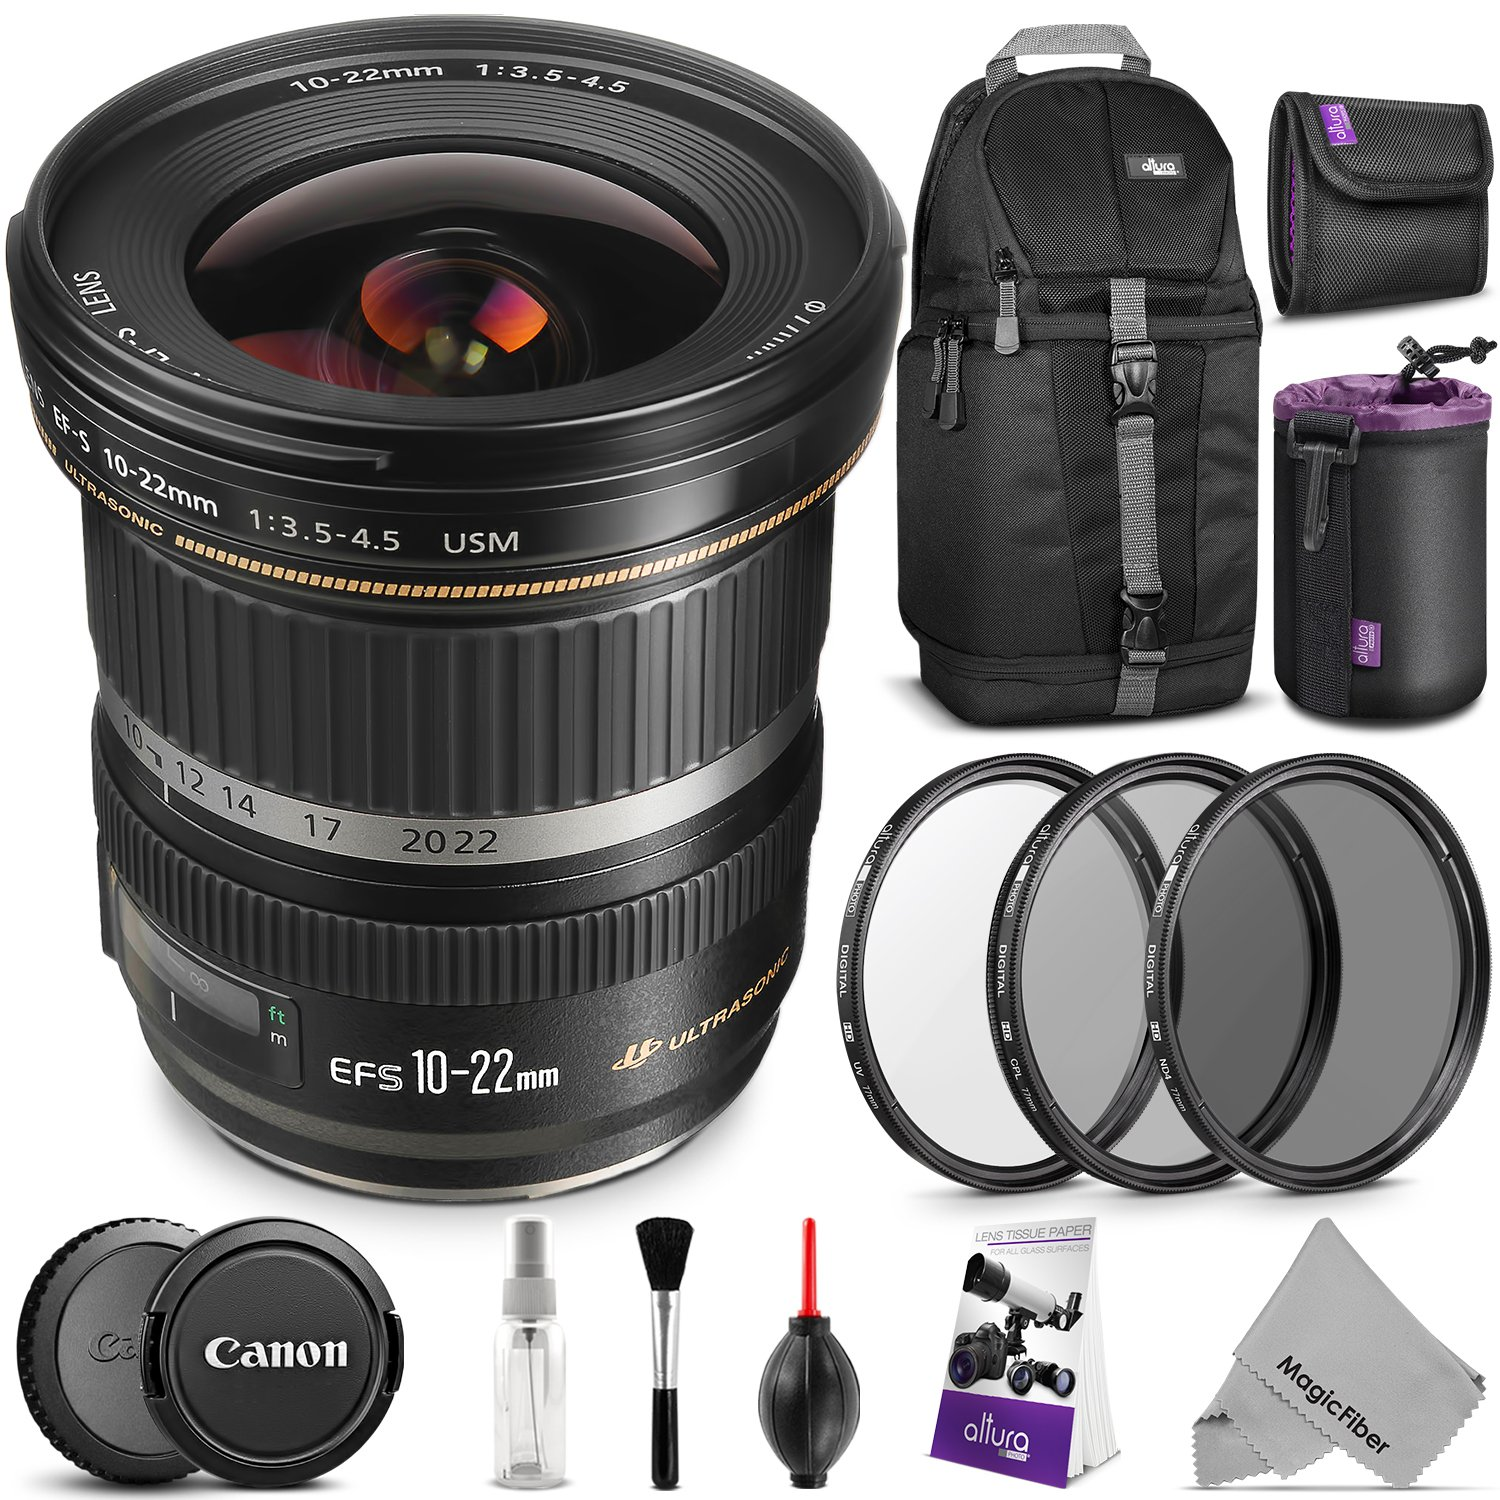 Canon EF-S 10-22mm f/3.5-4.5 USM Lens w/ Advanced Photo and Travel Bundle - Includes: Altura Photo Sling Backpack, UV-CPL-ND4, Neoprene Lens Pouch, Camera Cleaning Set by Canon